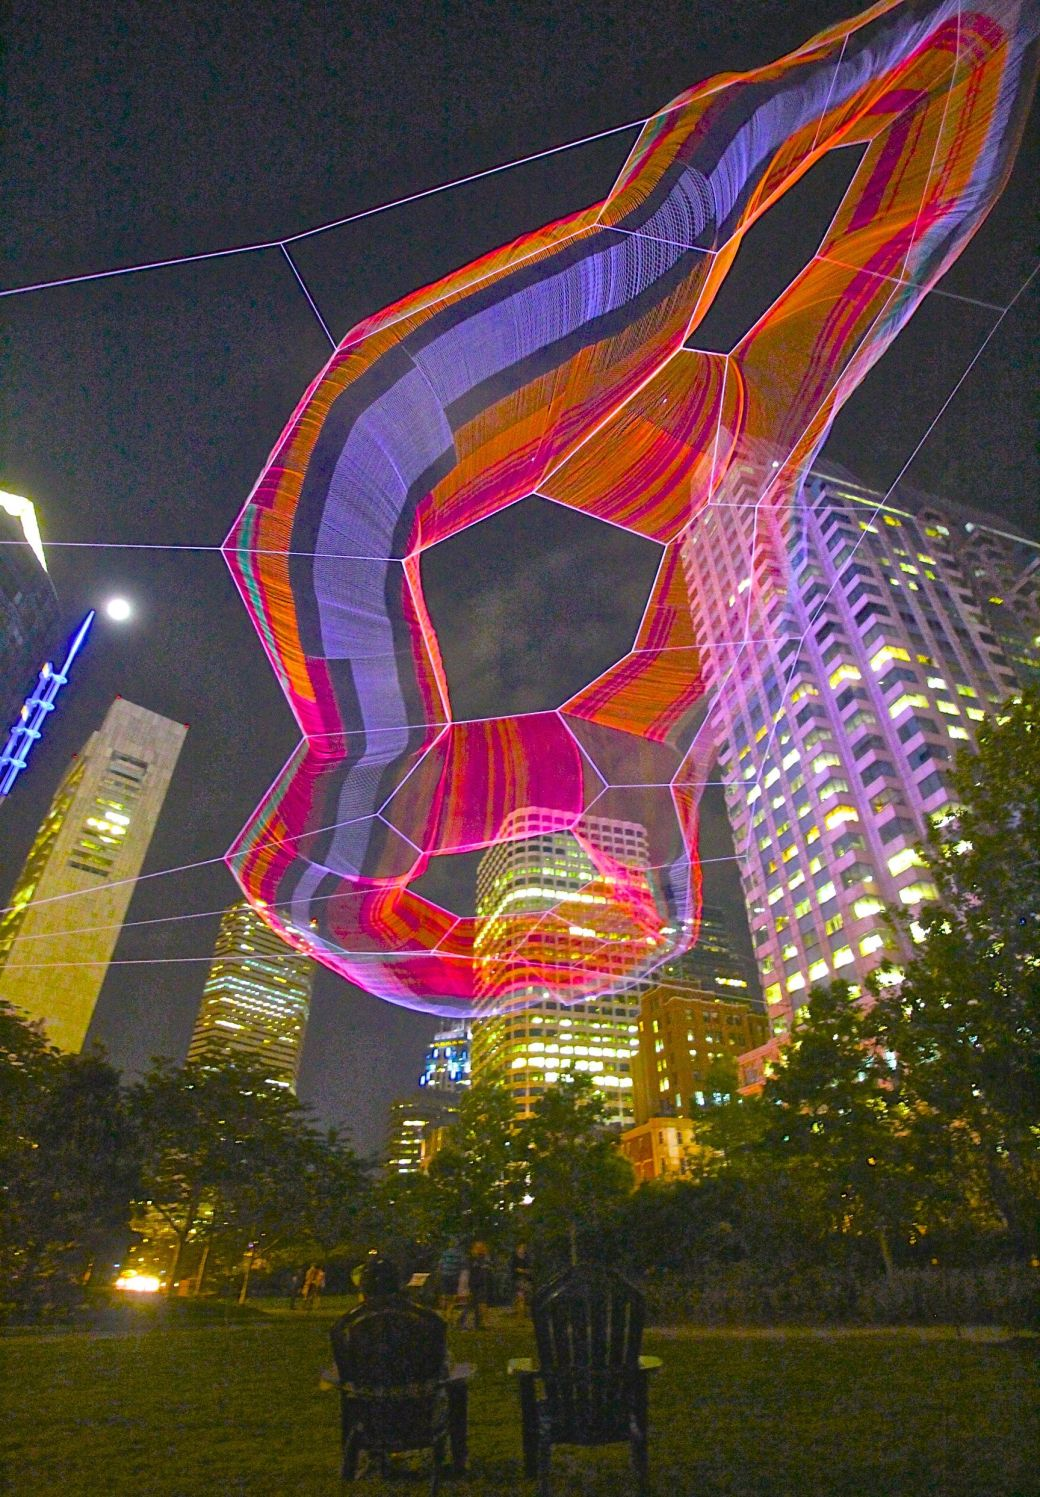 boston greenway Janet Echelman sculpture night 3